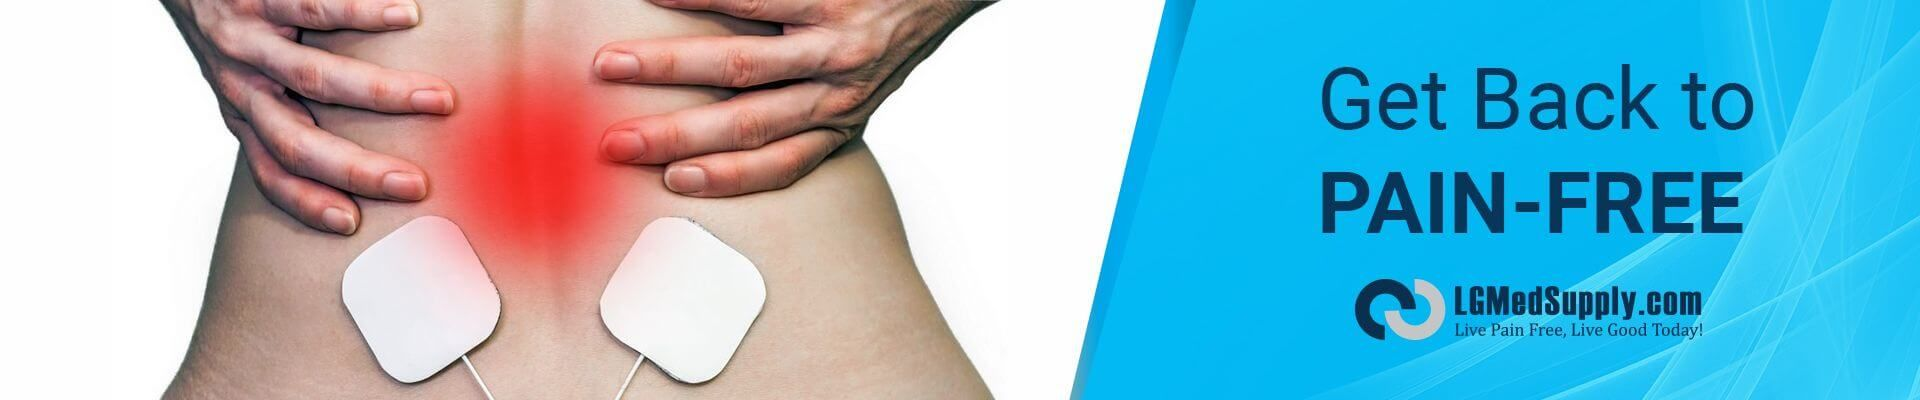 Our Deep Penetrating XL Light Therapy for EXCEPTIONAL PAIN RELIEF